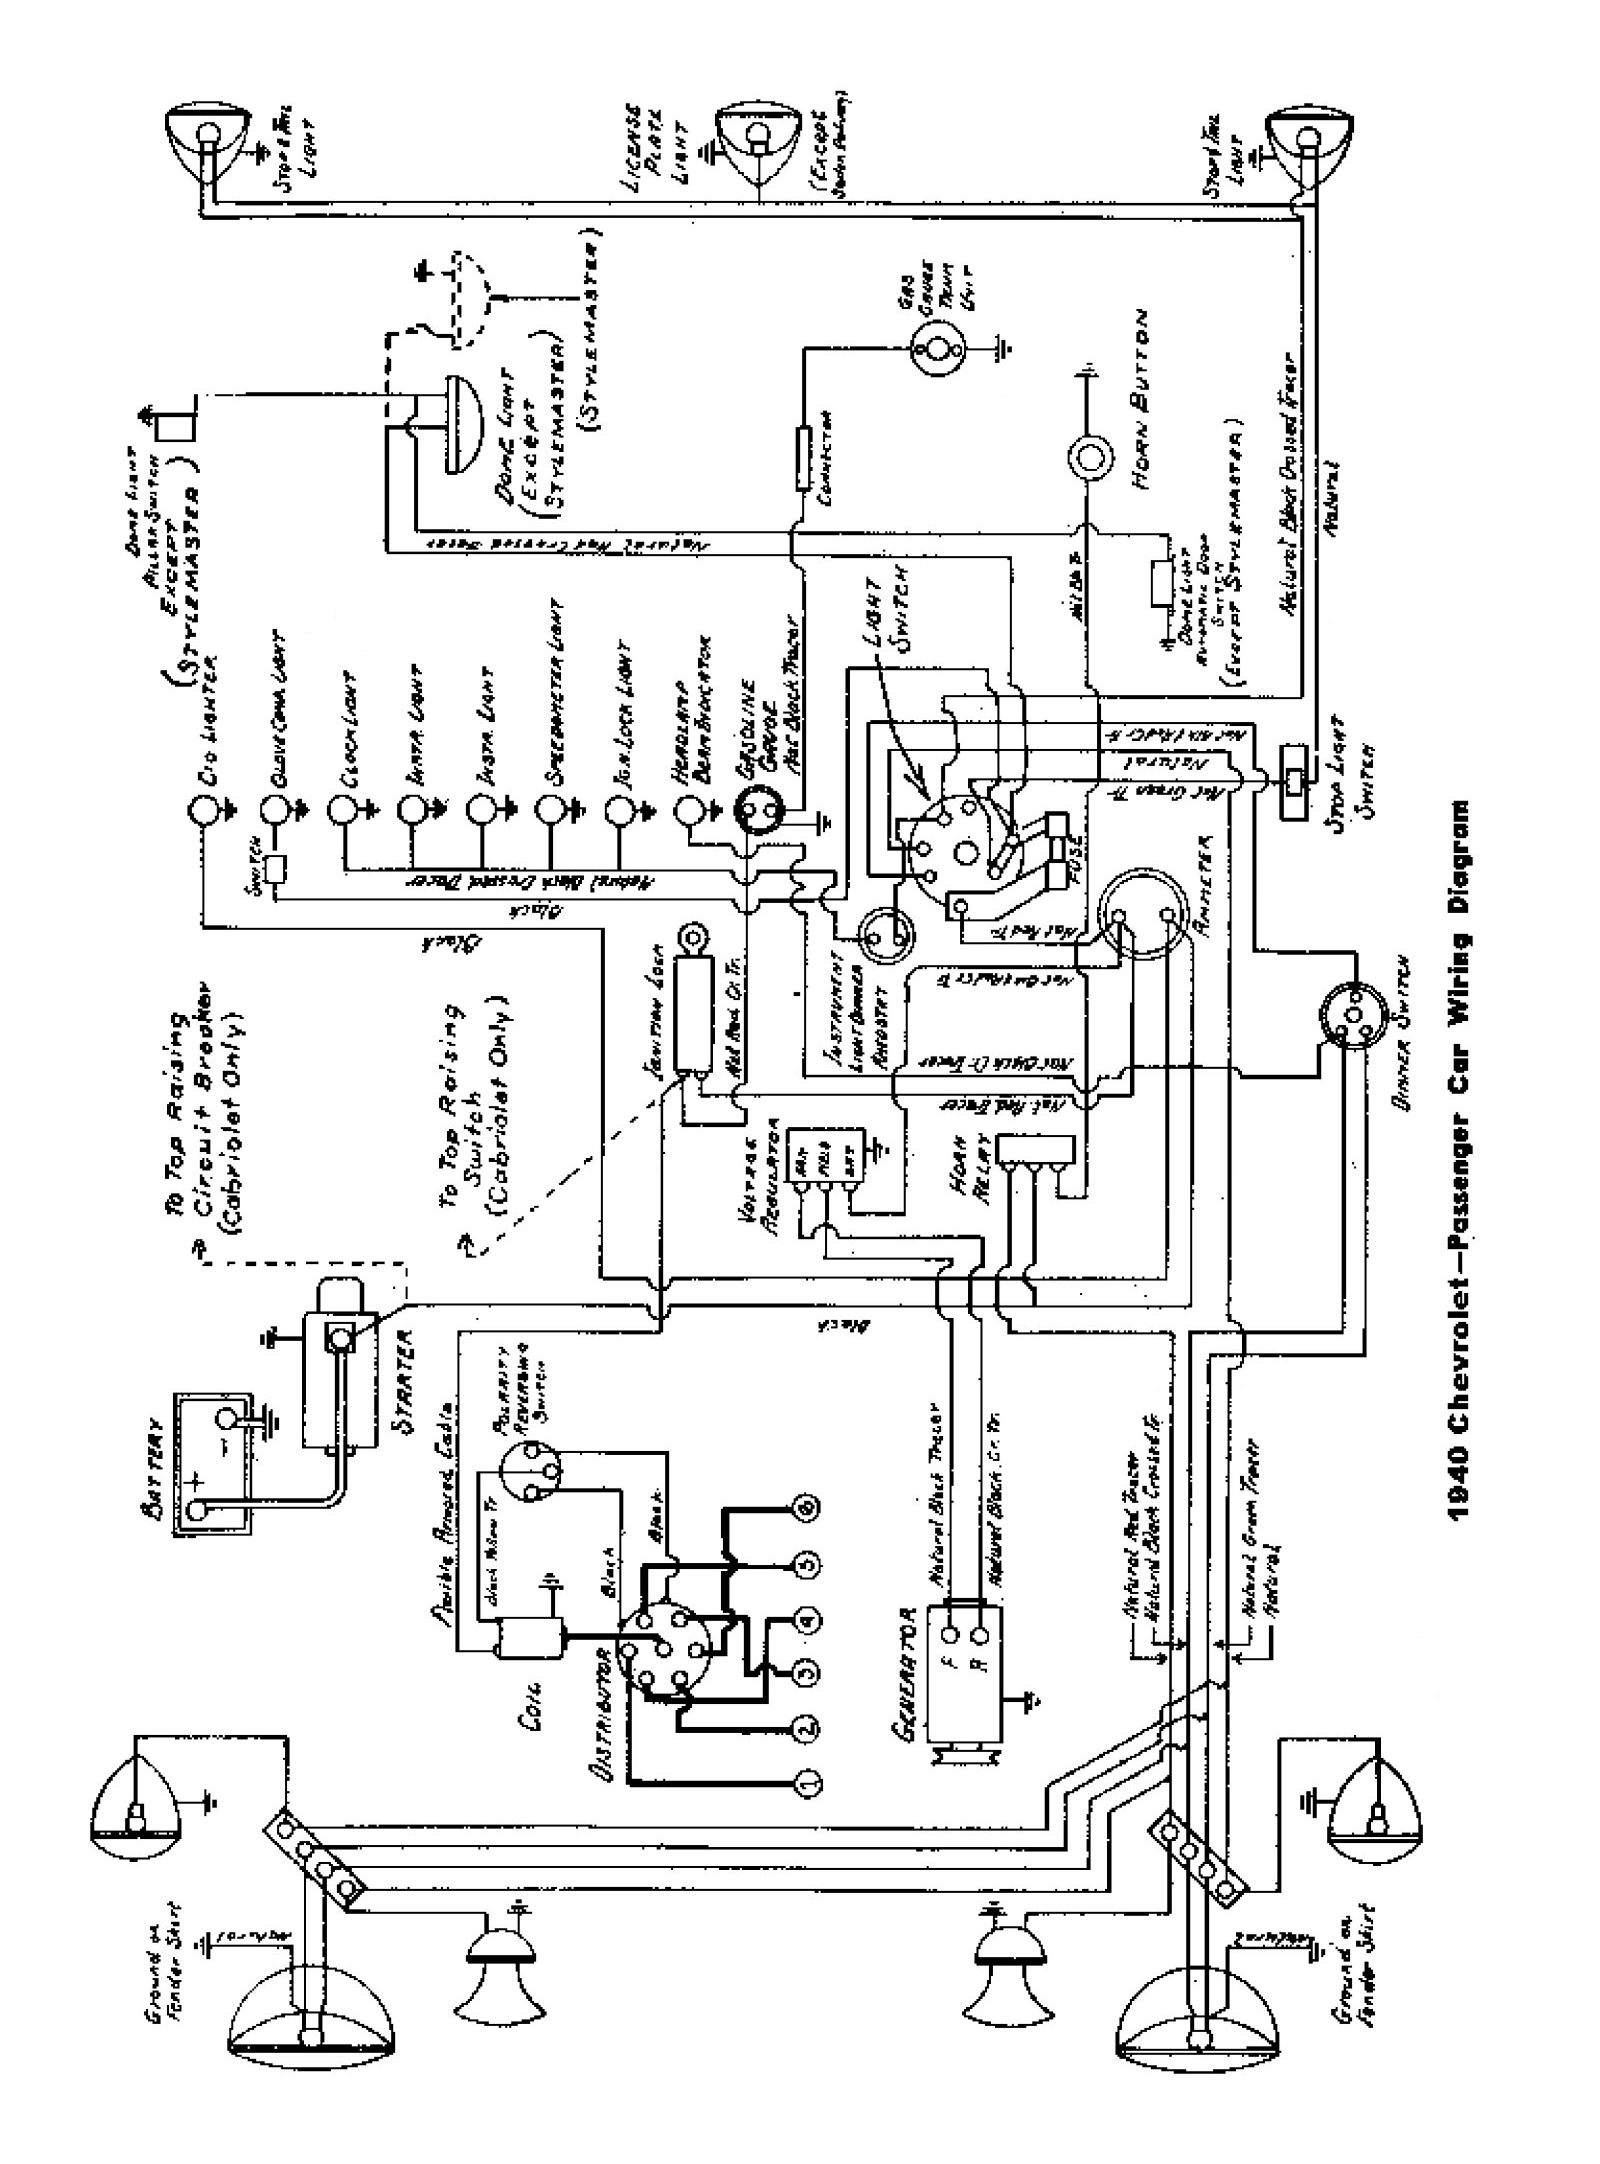 1938 Chevy Wiring Diagram Guide And Troubleshooting Of 1934 Schematic Third Level Rh 6 8 12 Jacobwinterstein Com Ford 1956